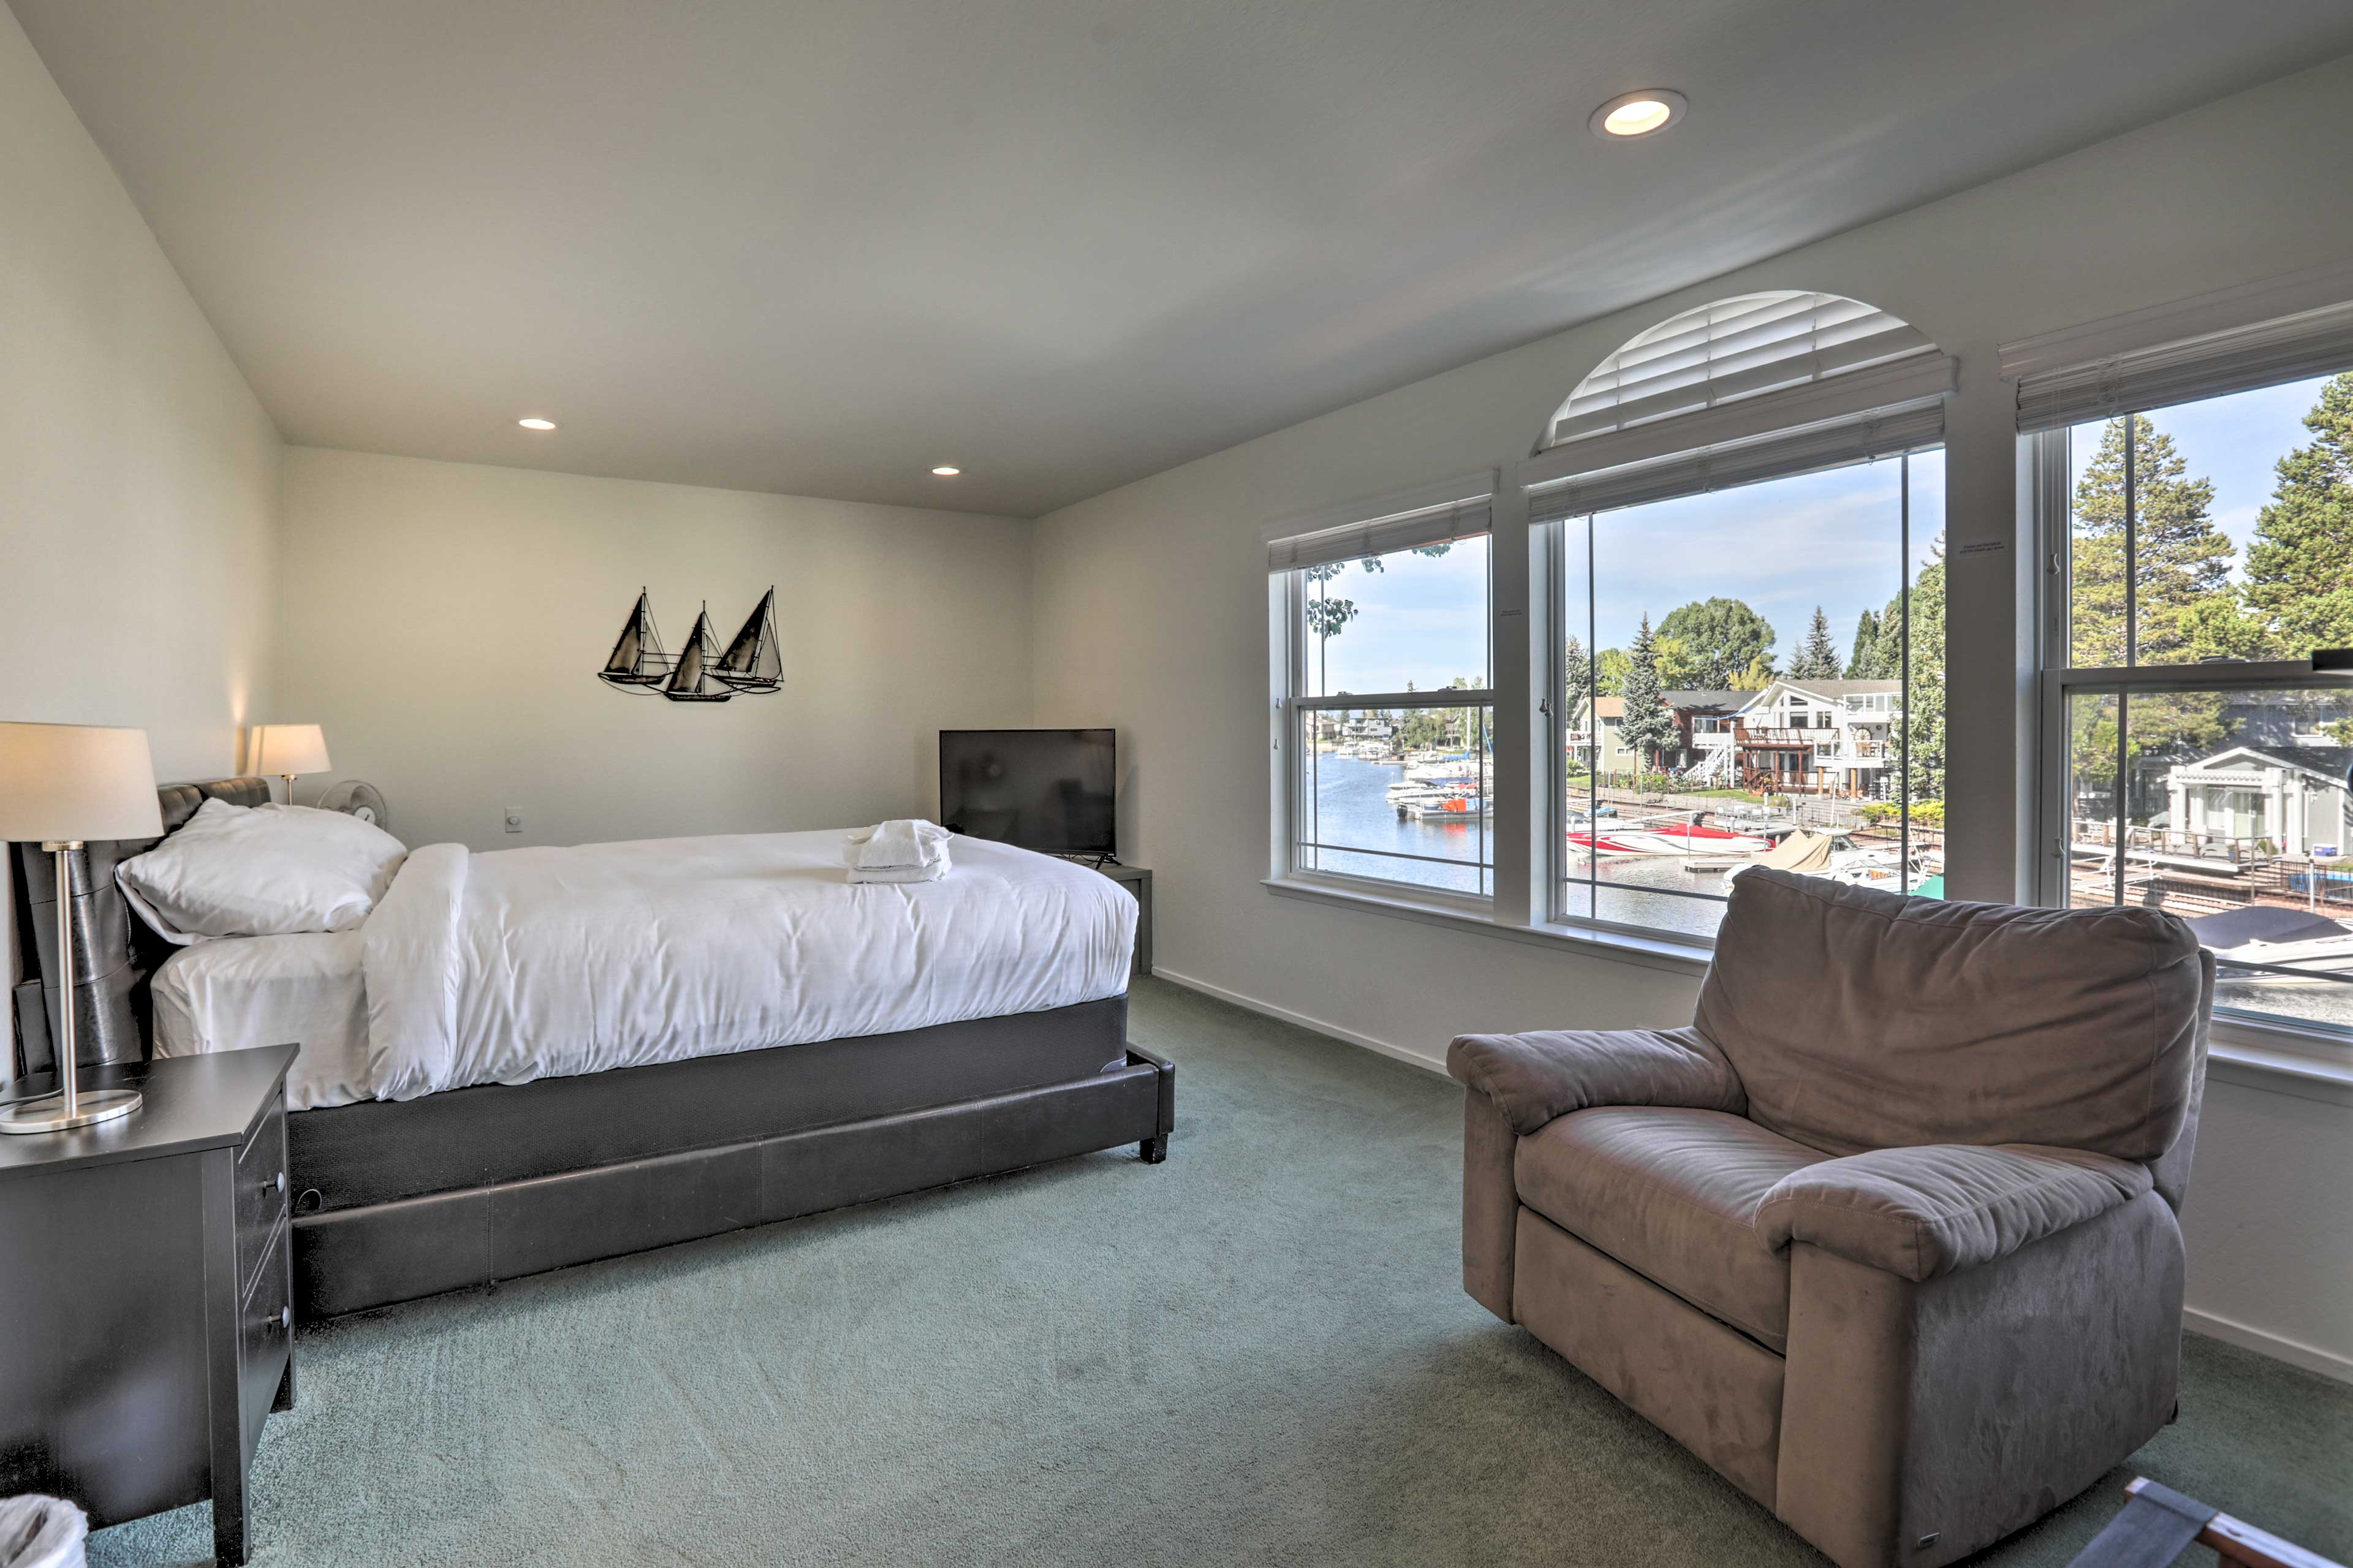 Retreat to the cozy master bedroom with flat screen TV.